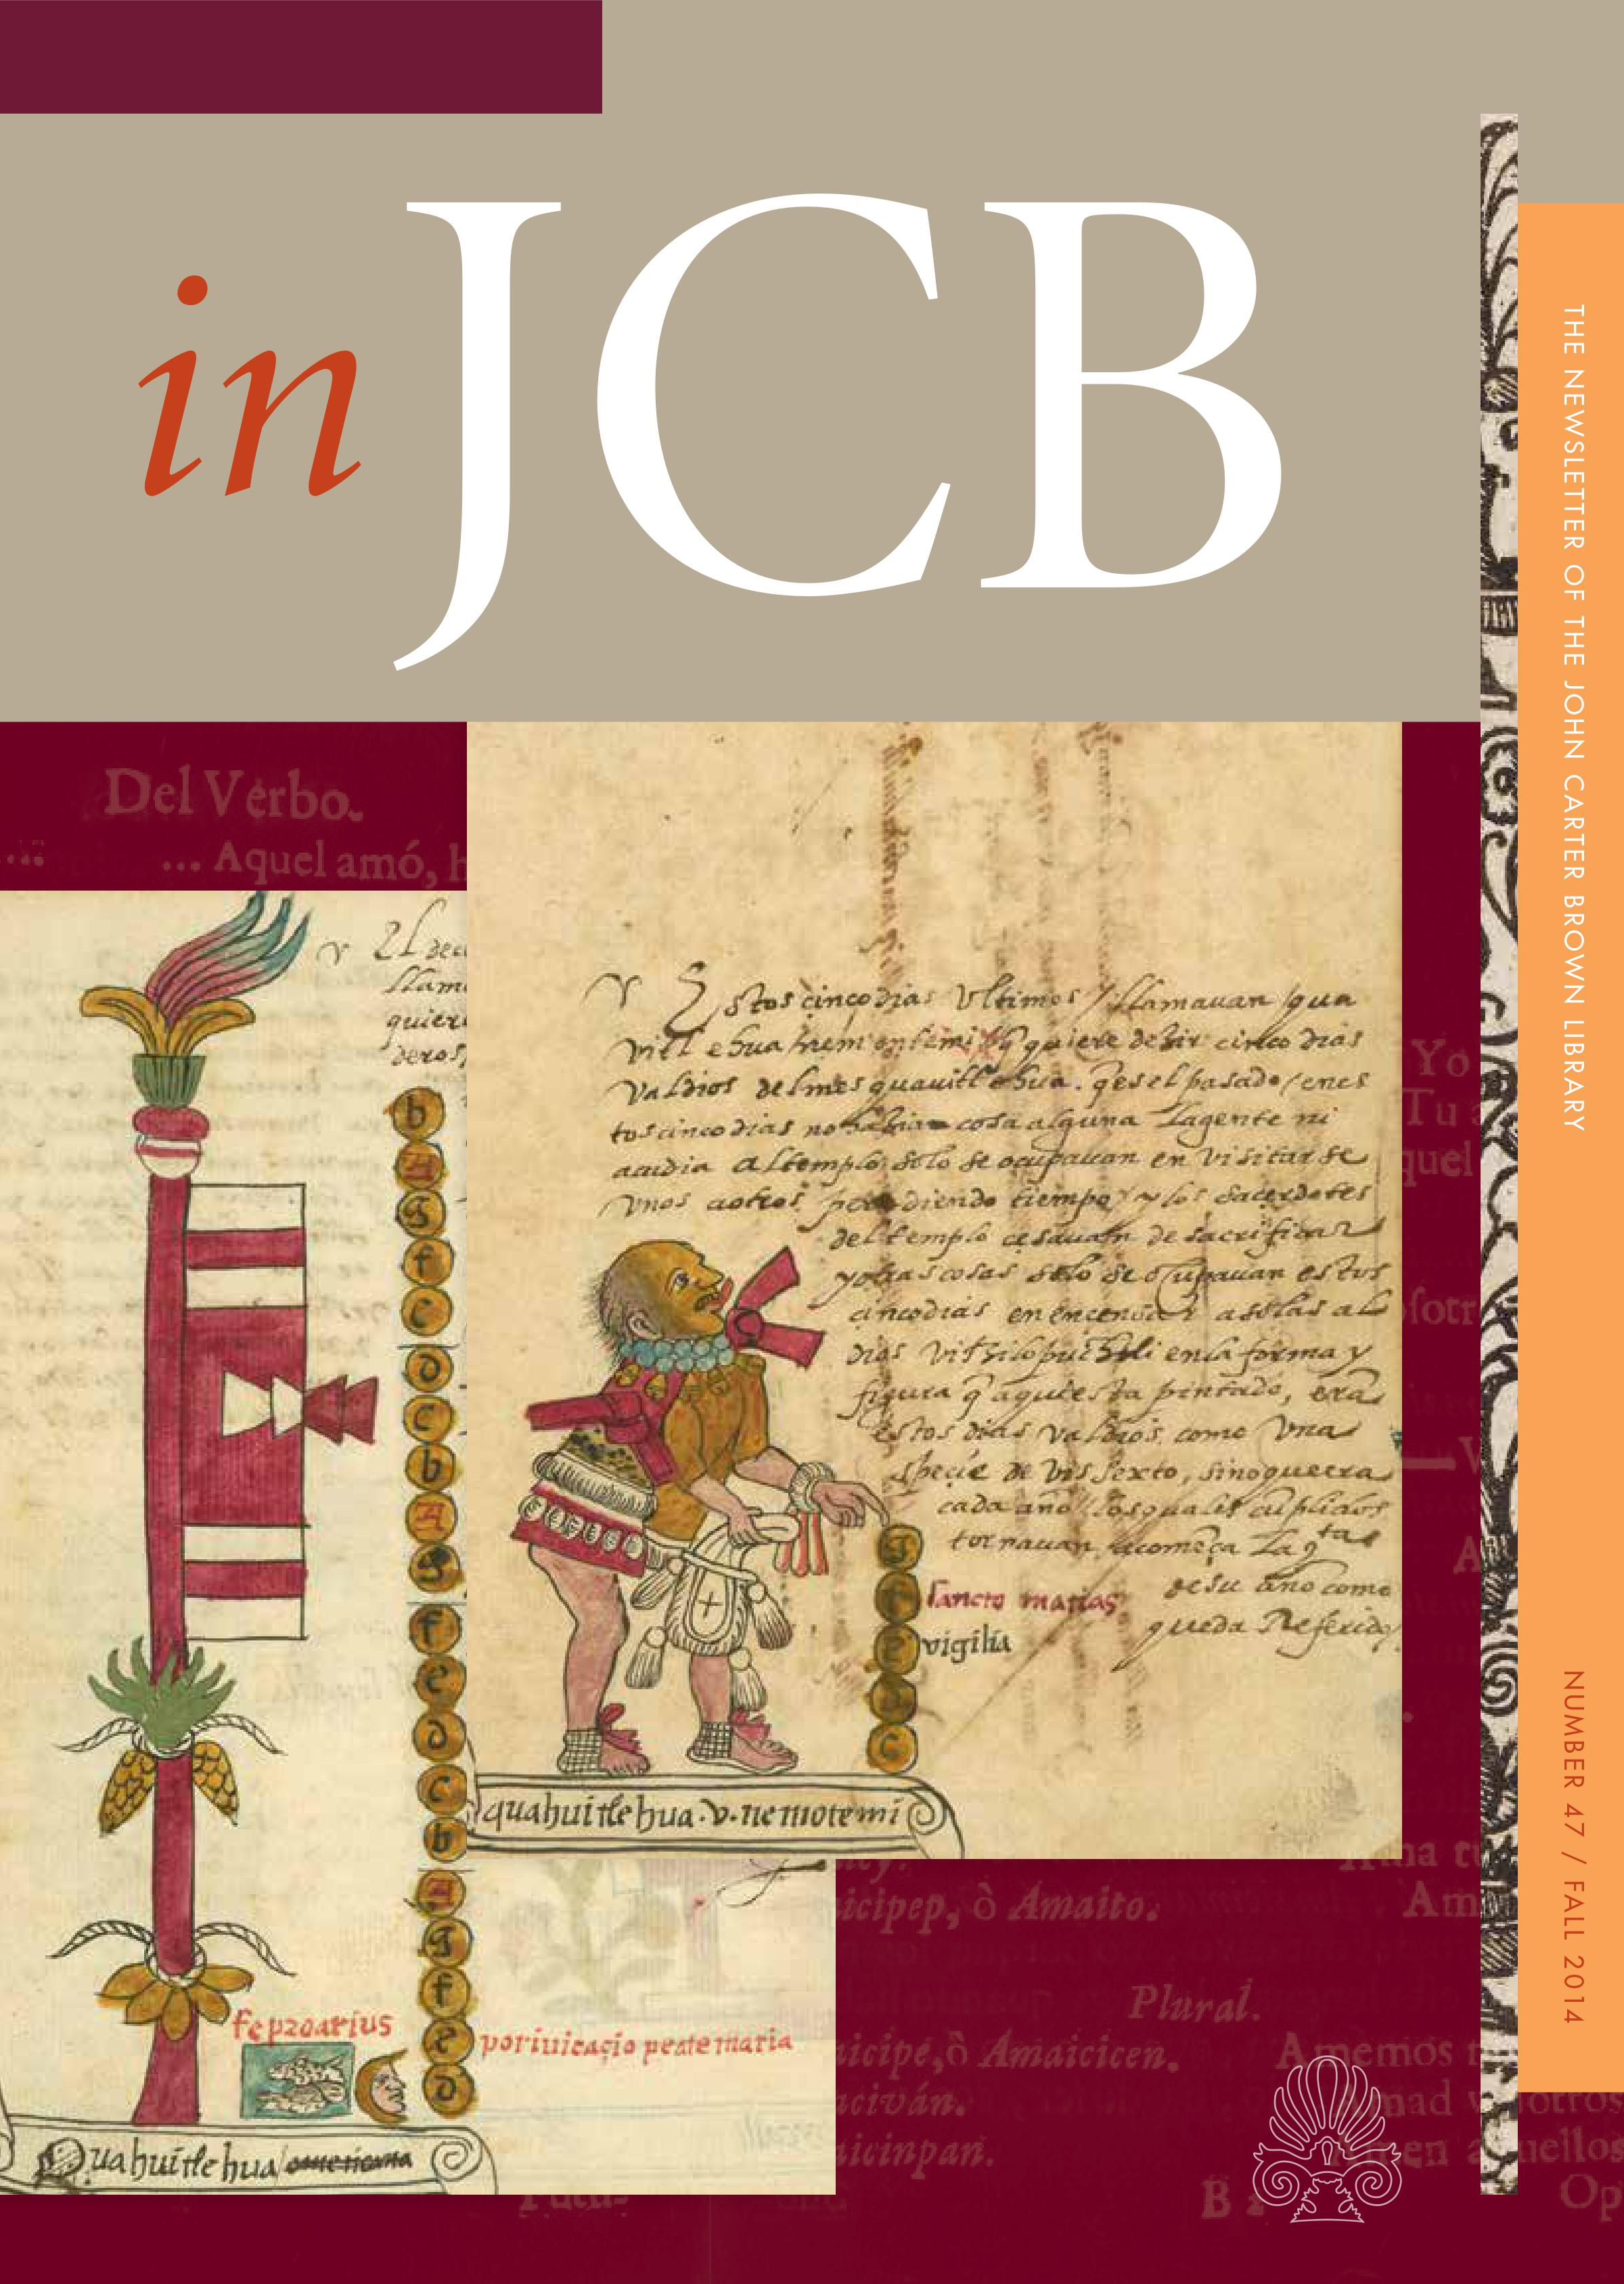 colorful cover of the In JCB newsletter, showing two pages with early manuscript text and images